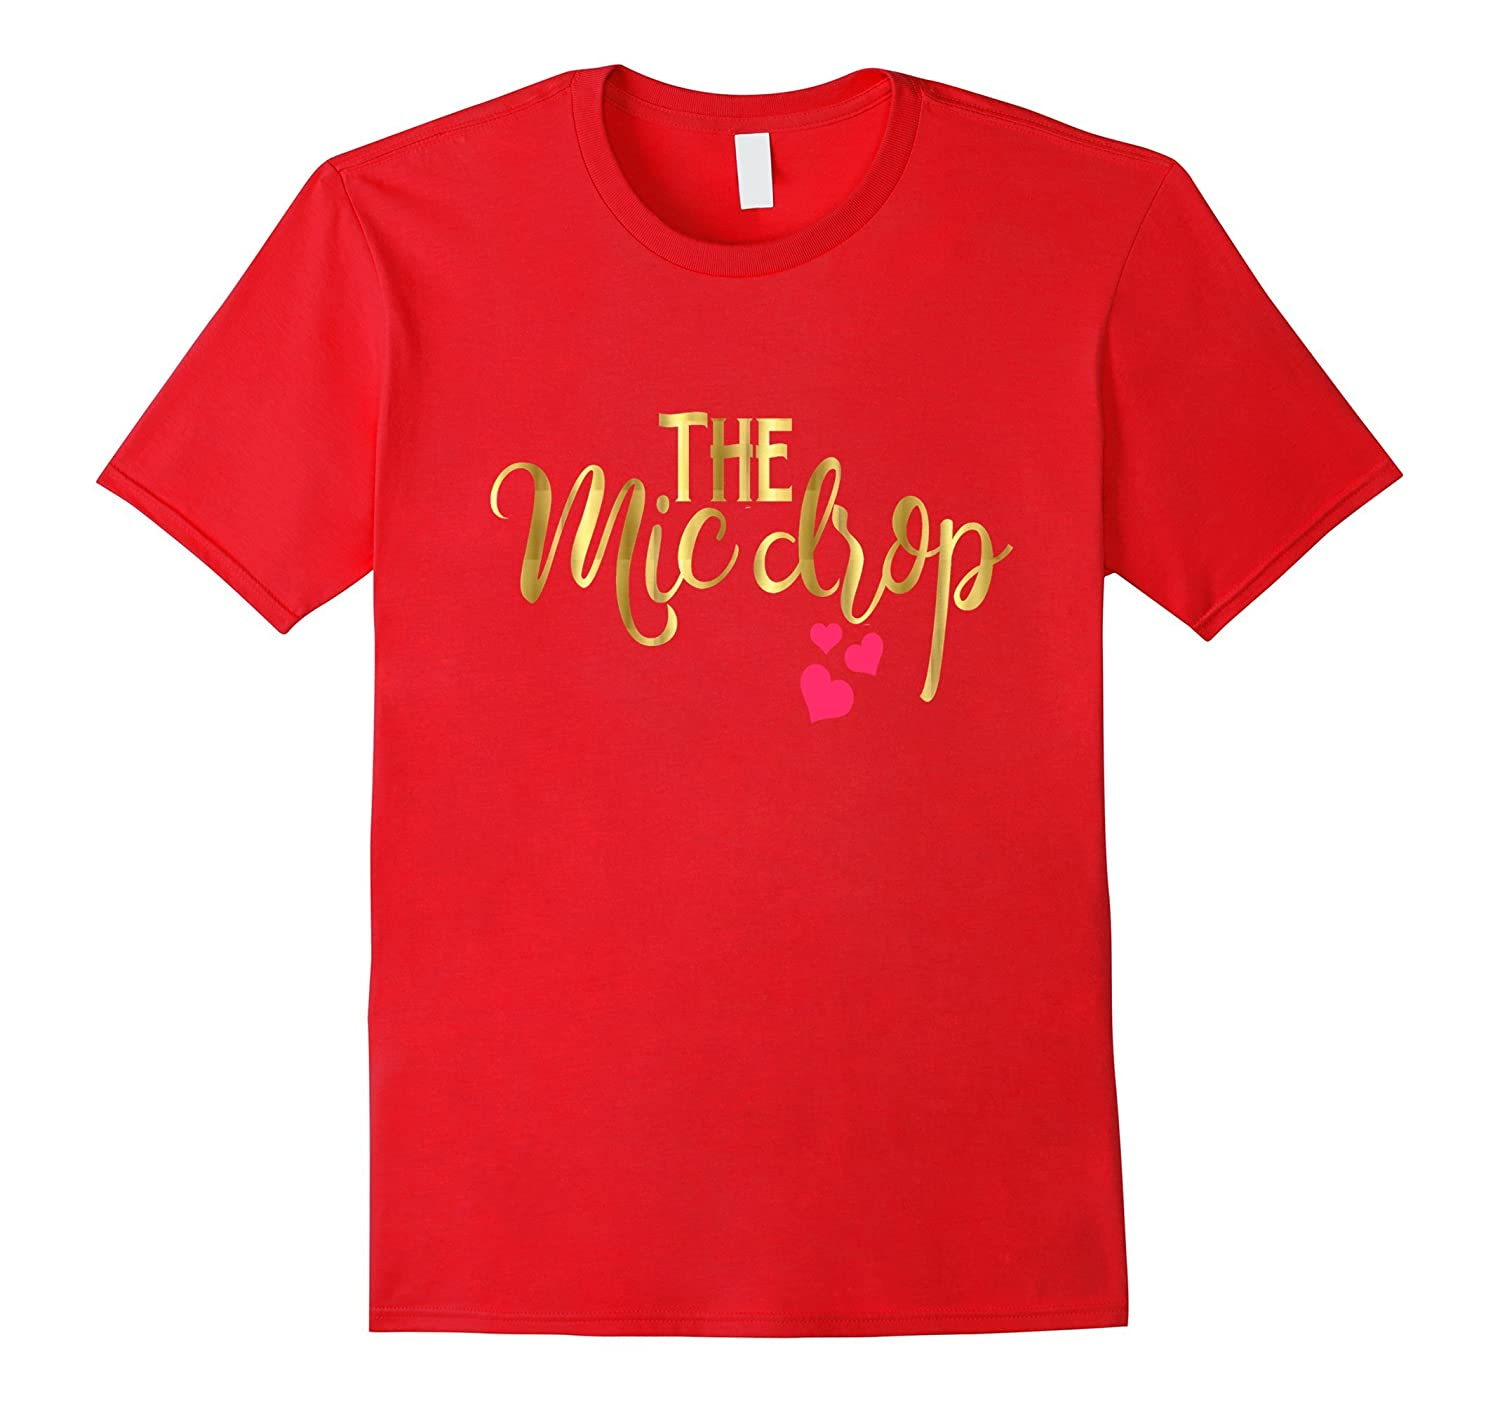 Youngest Child Shirt The Mic Drop Family Kids Daughter Gold-TH